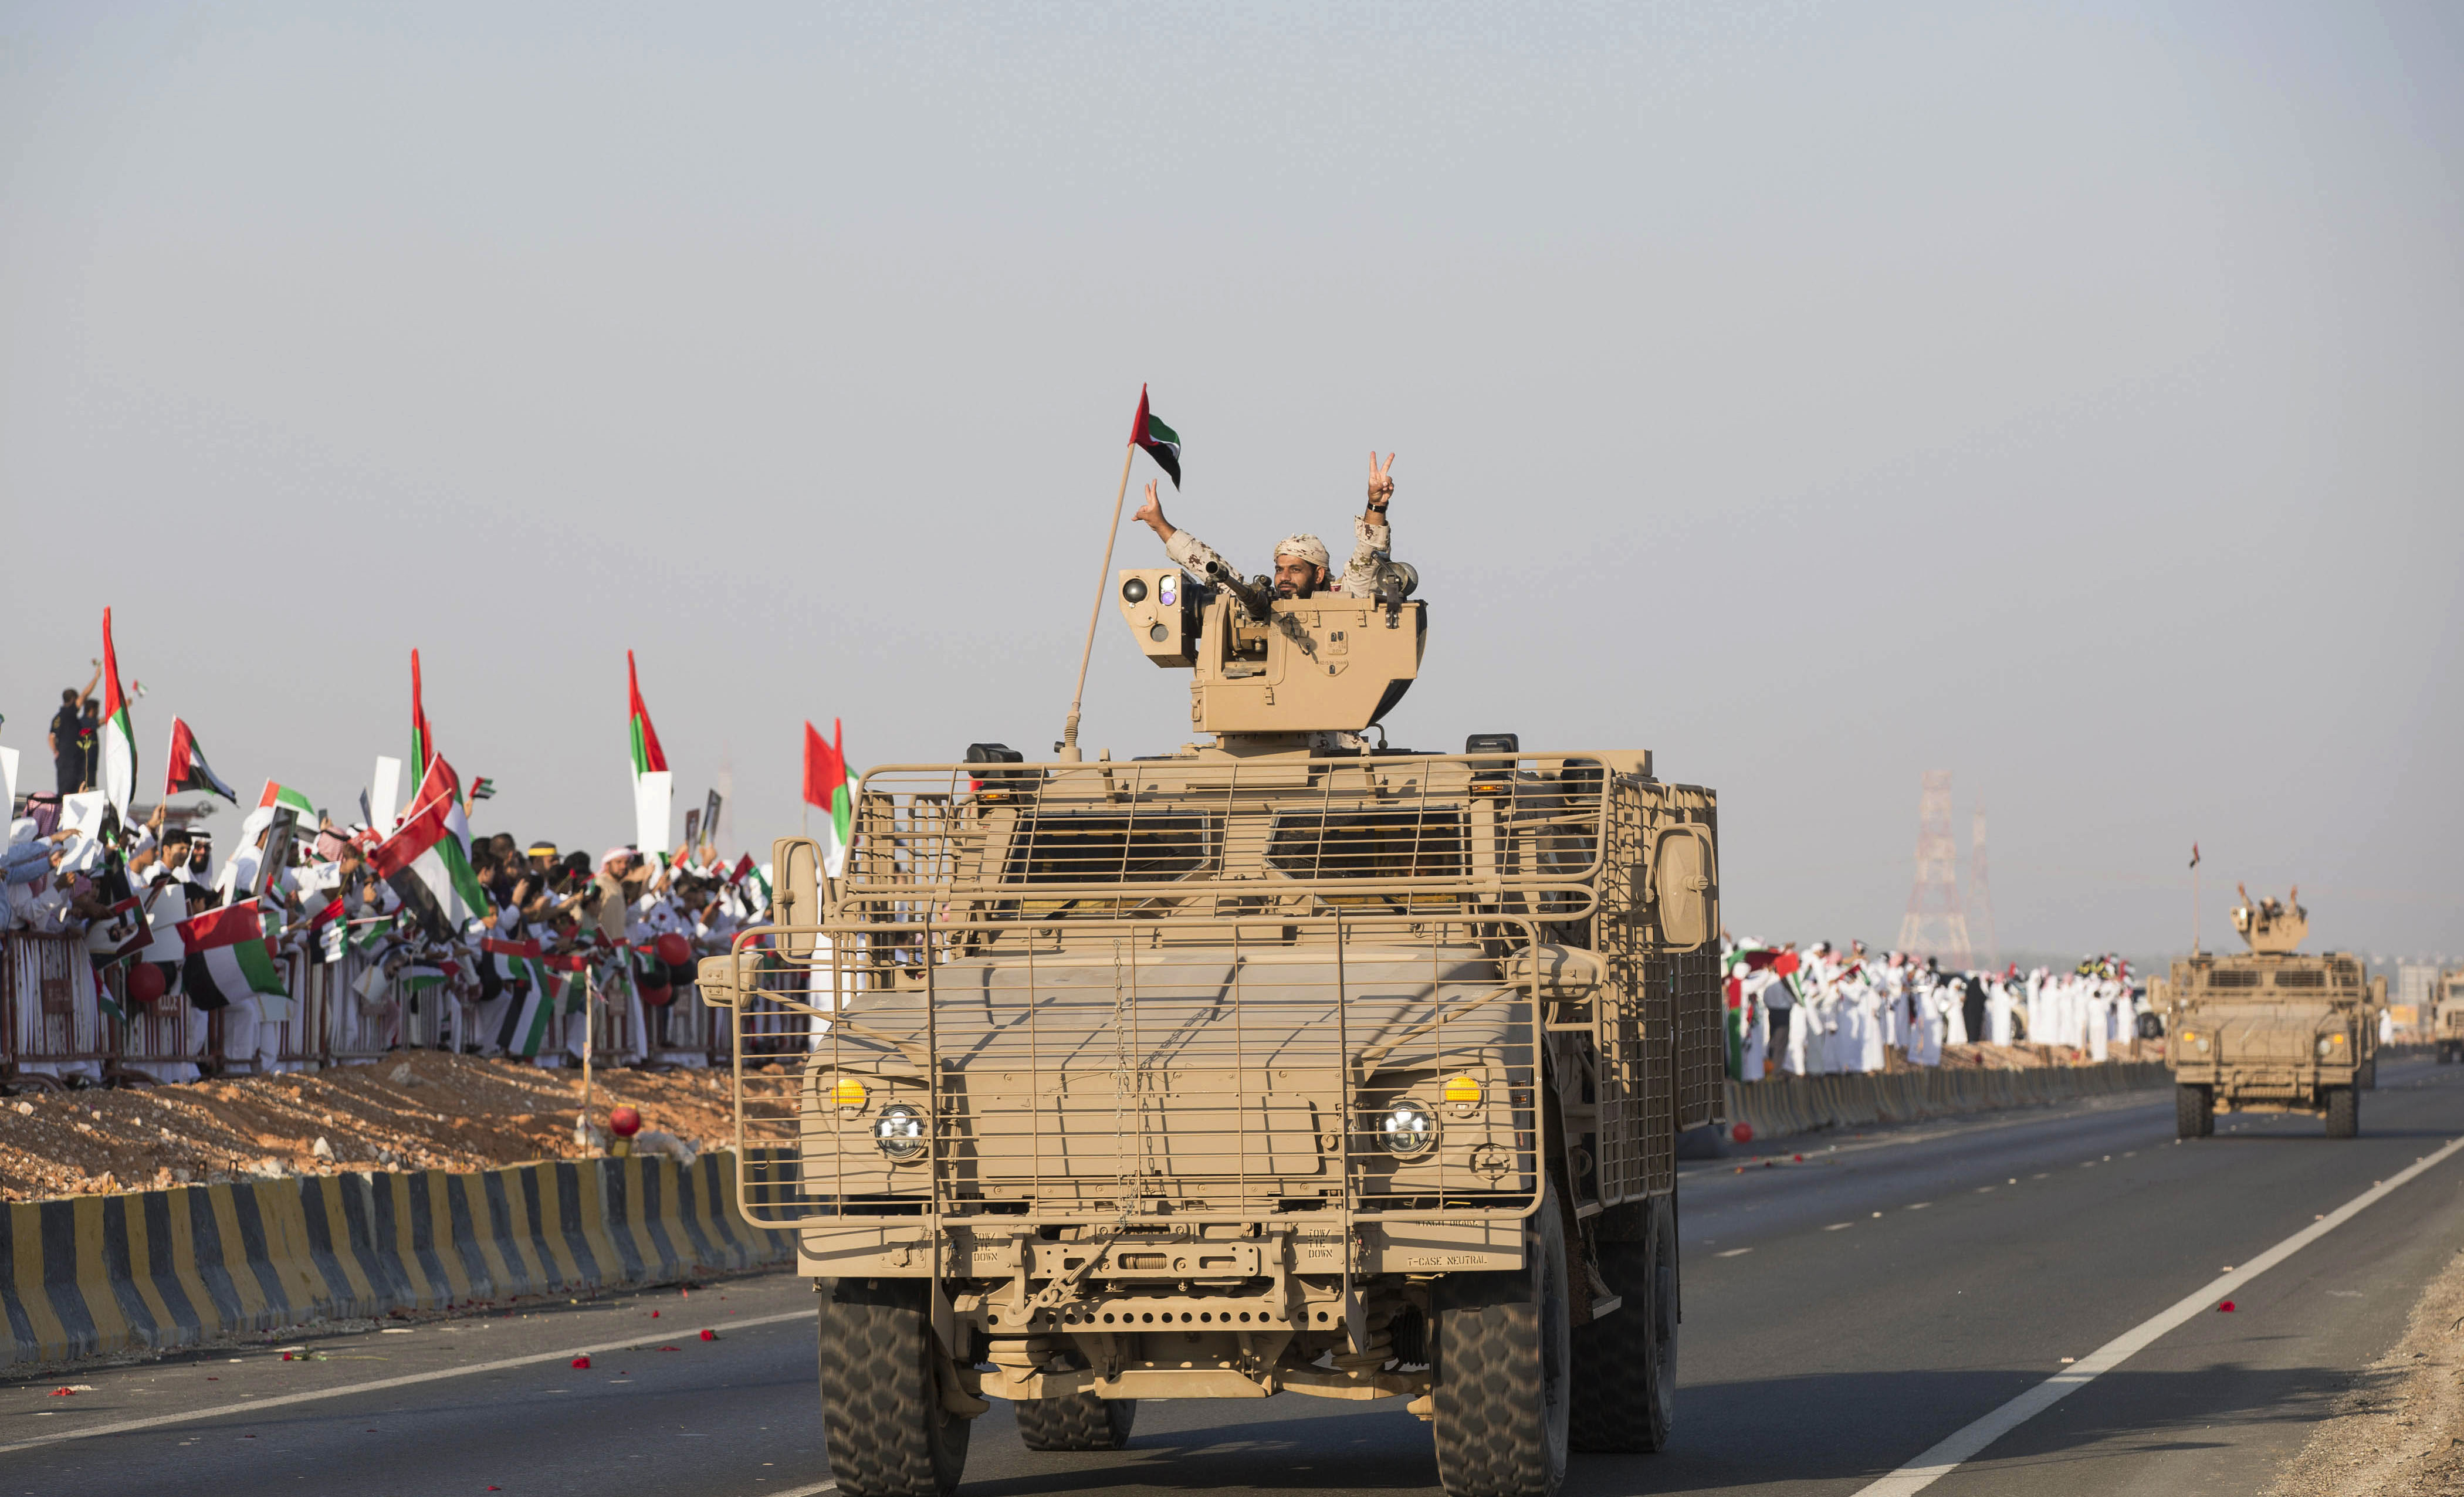 UAE Not Ended Operations in Yemen